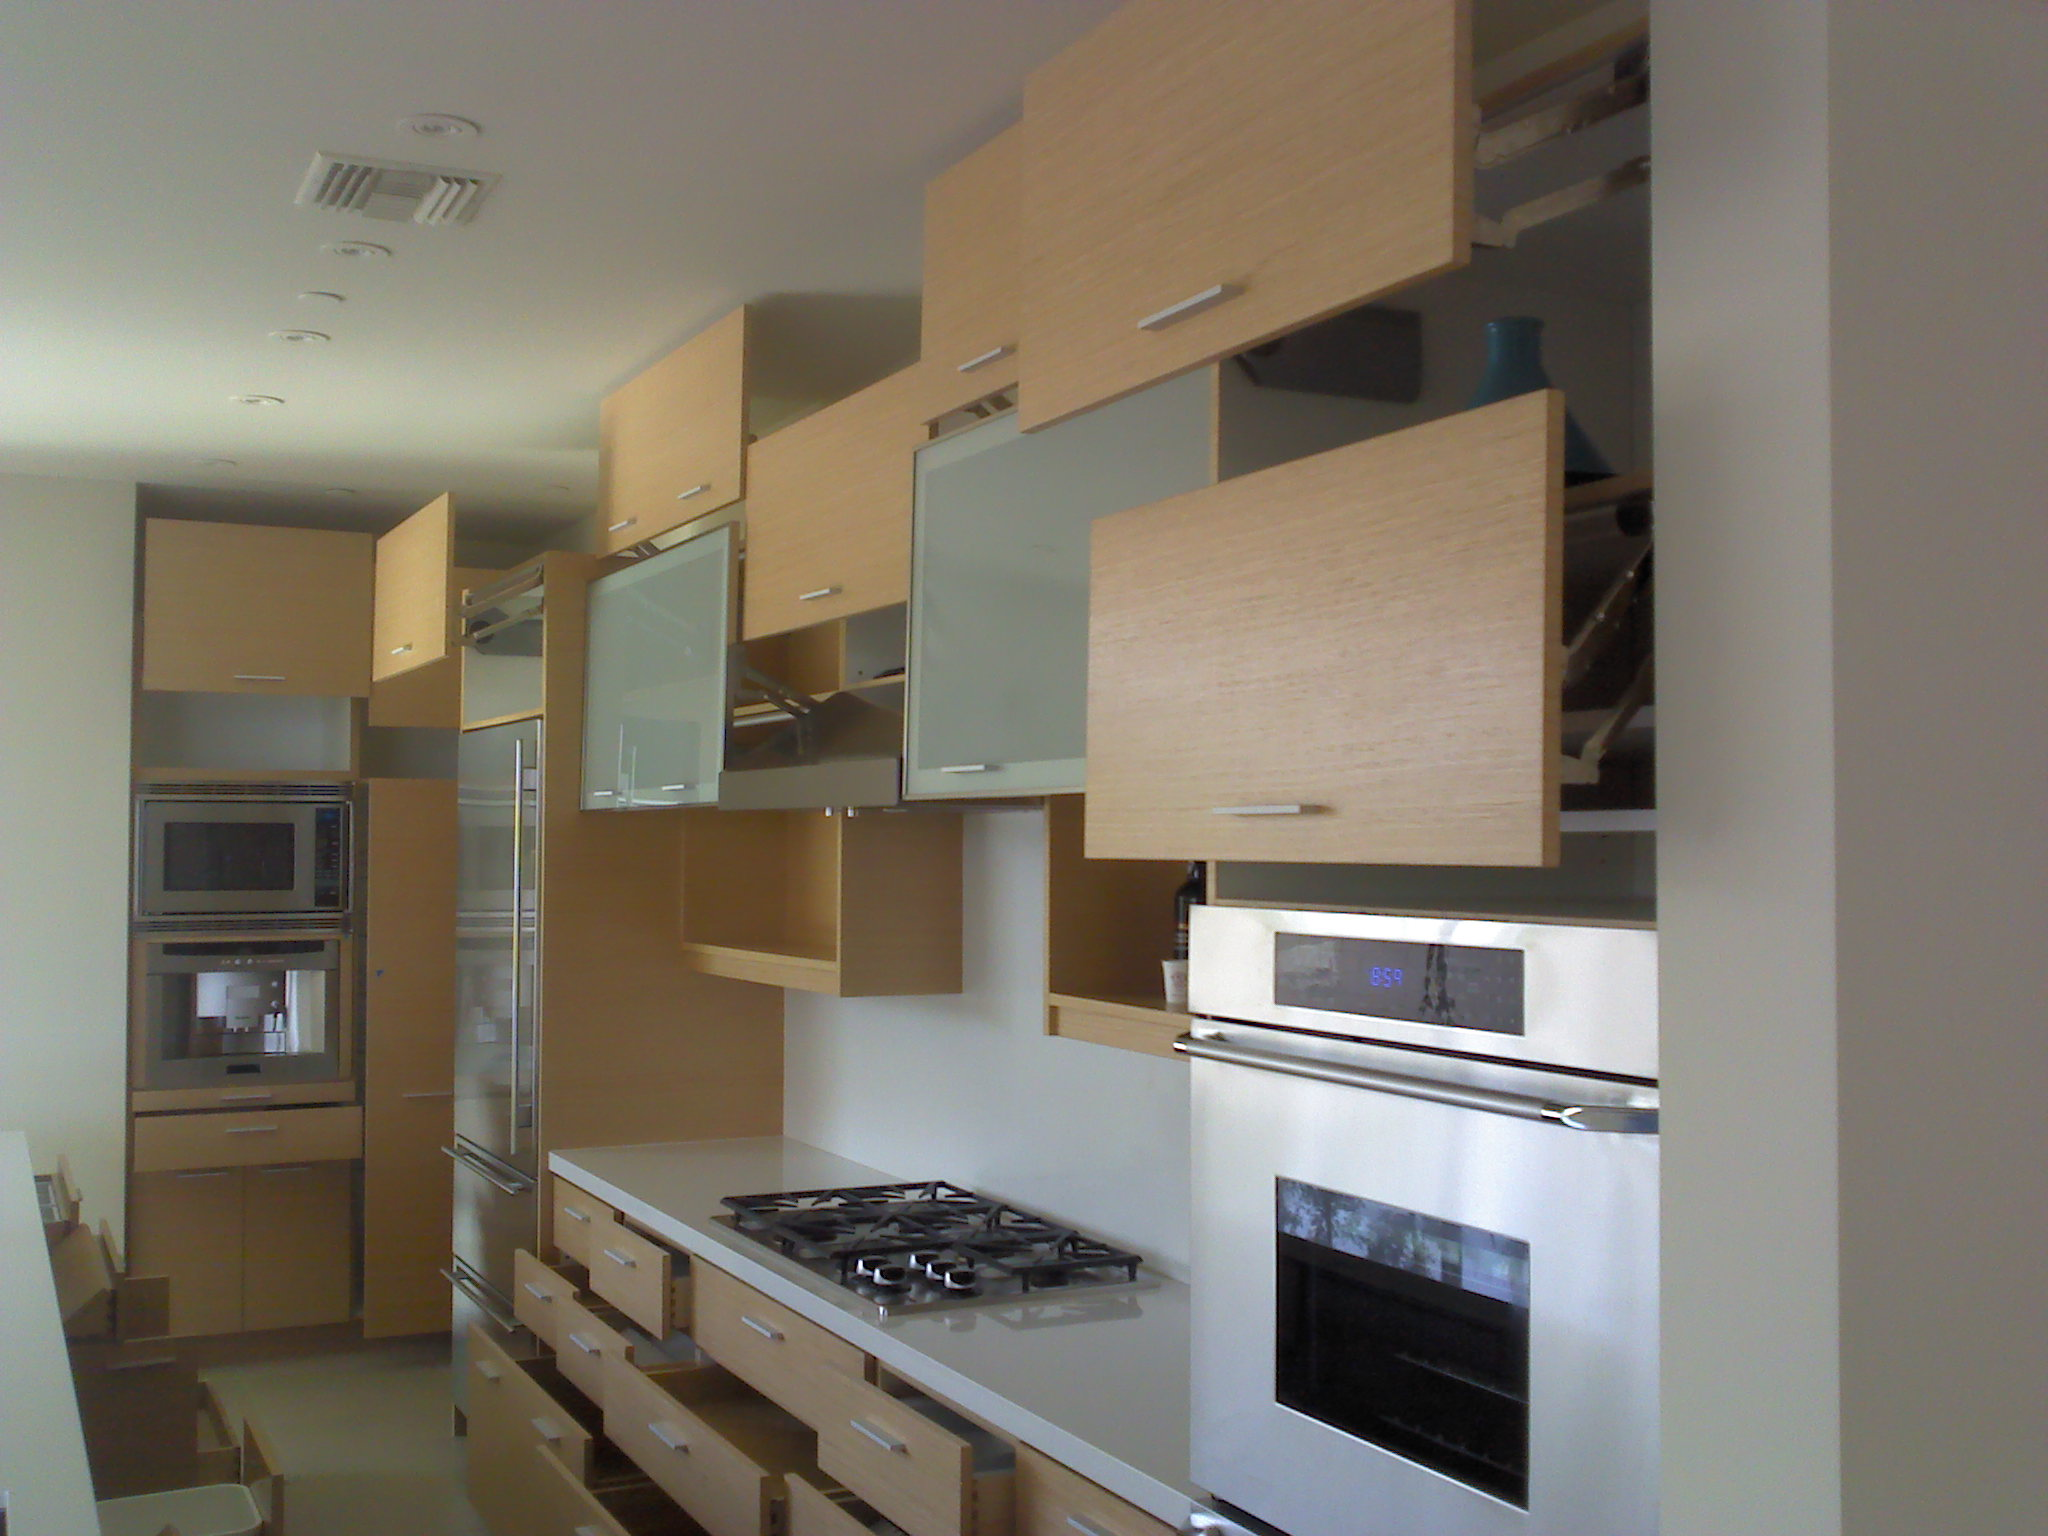 2010 Cabinet Corporation Image Gallery ProView